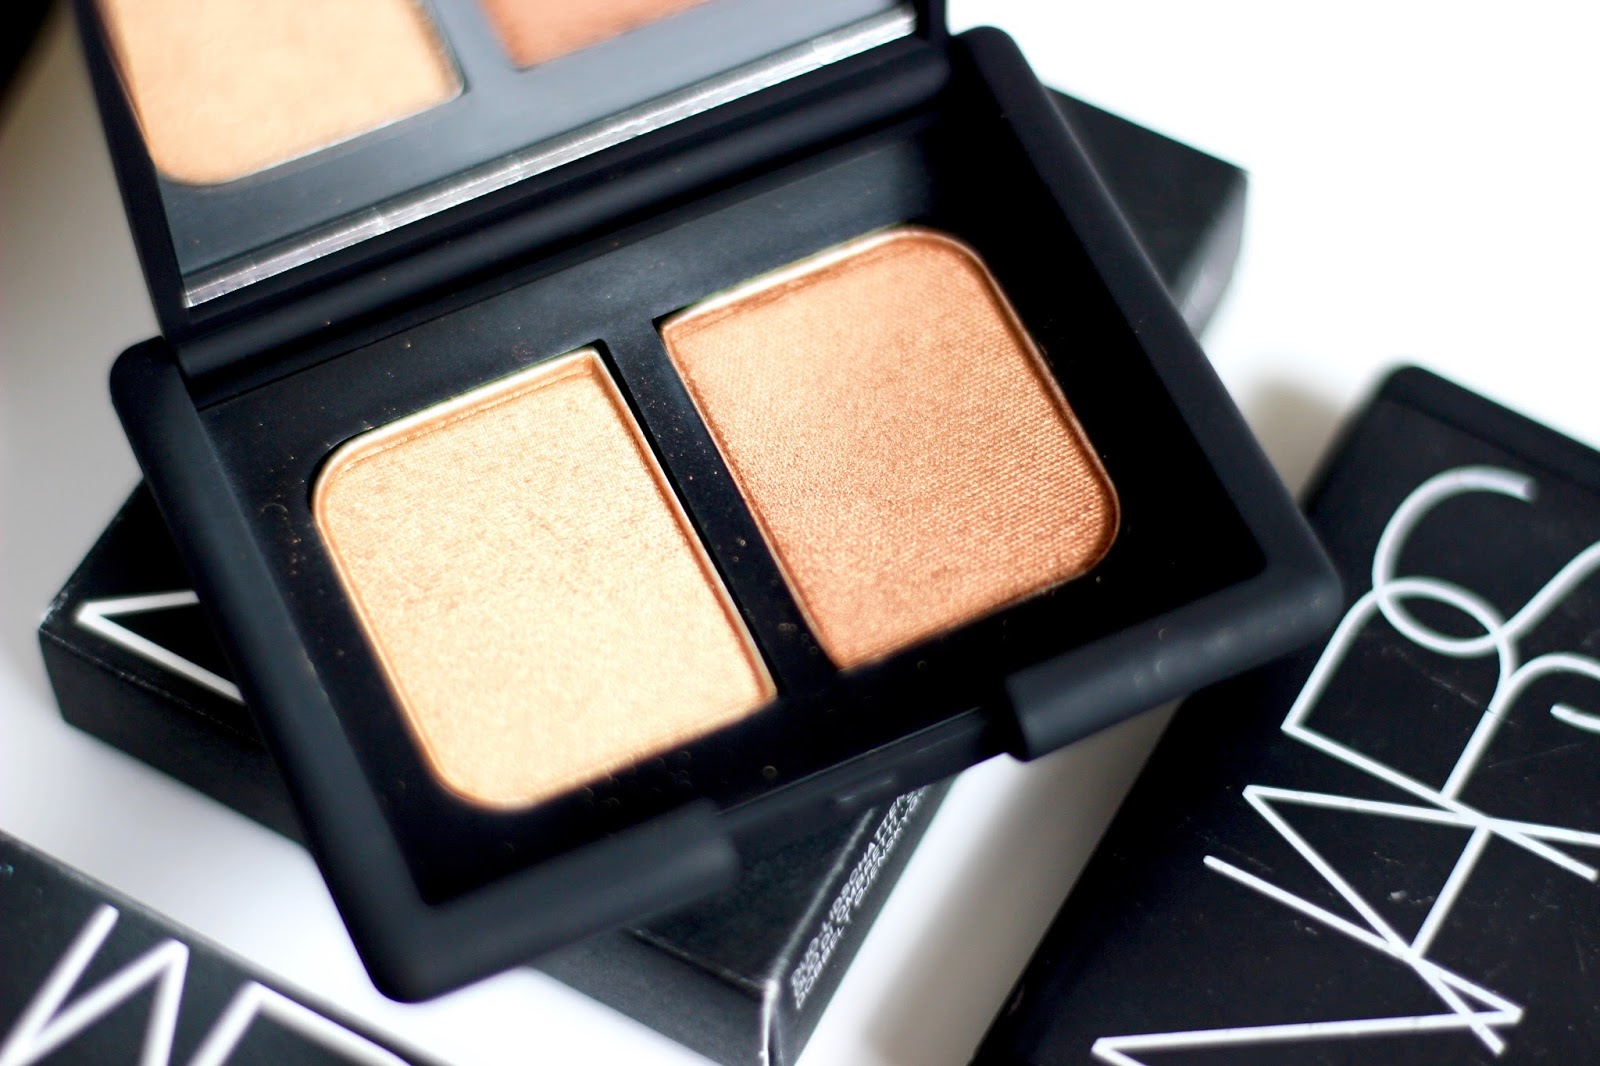 Nars eyeshadow duo Isolde